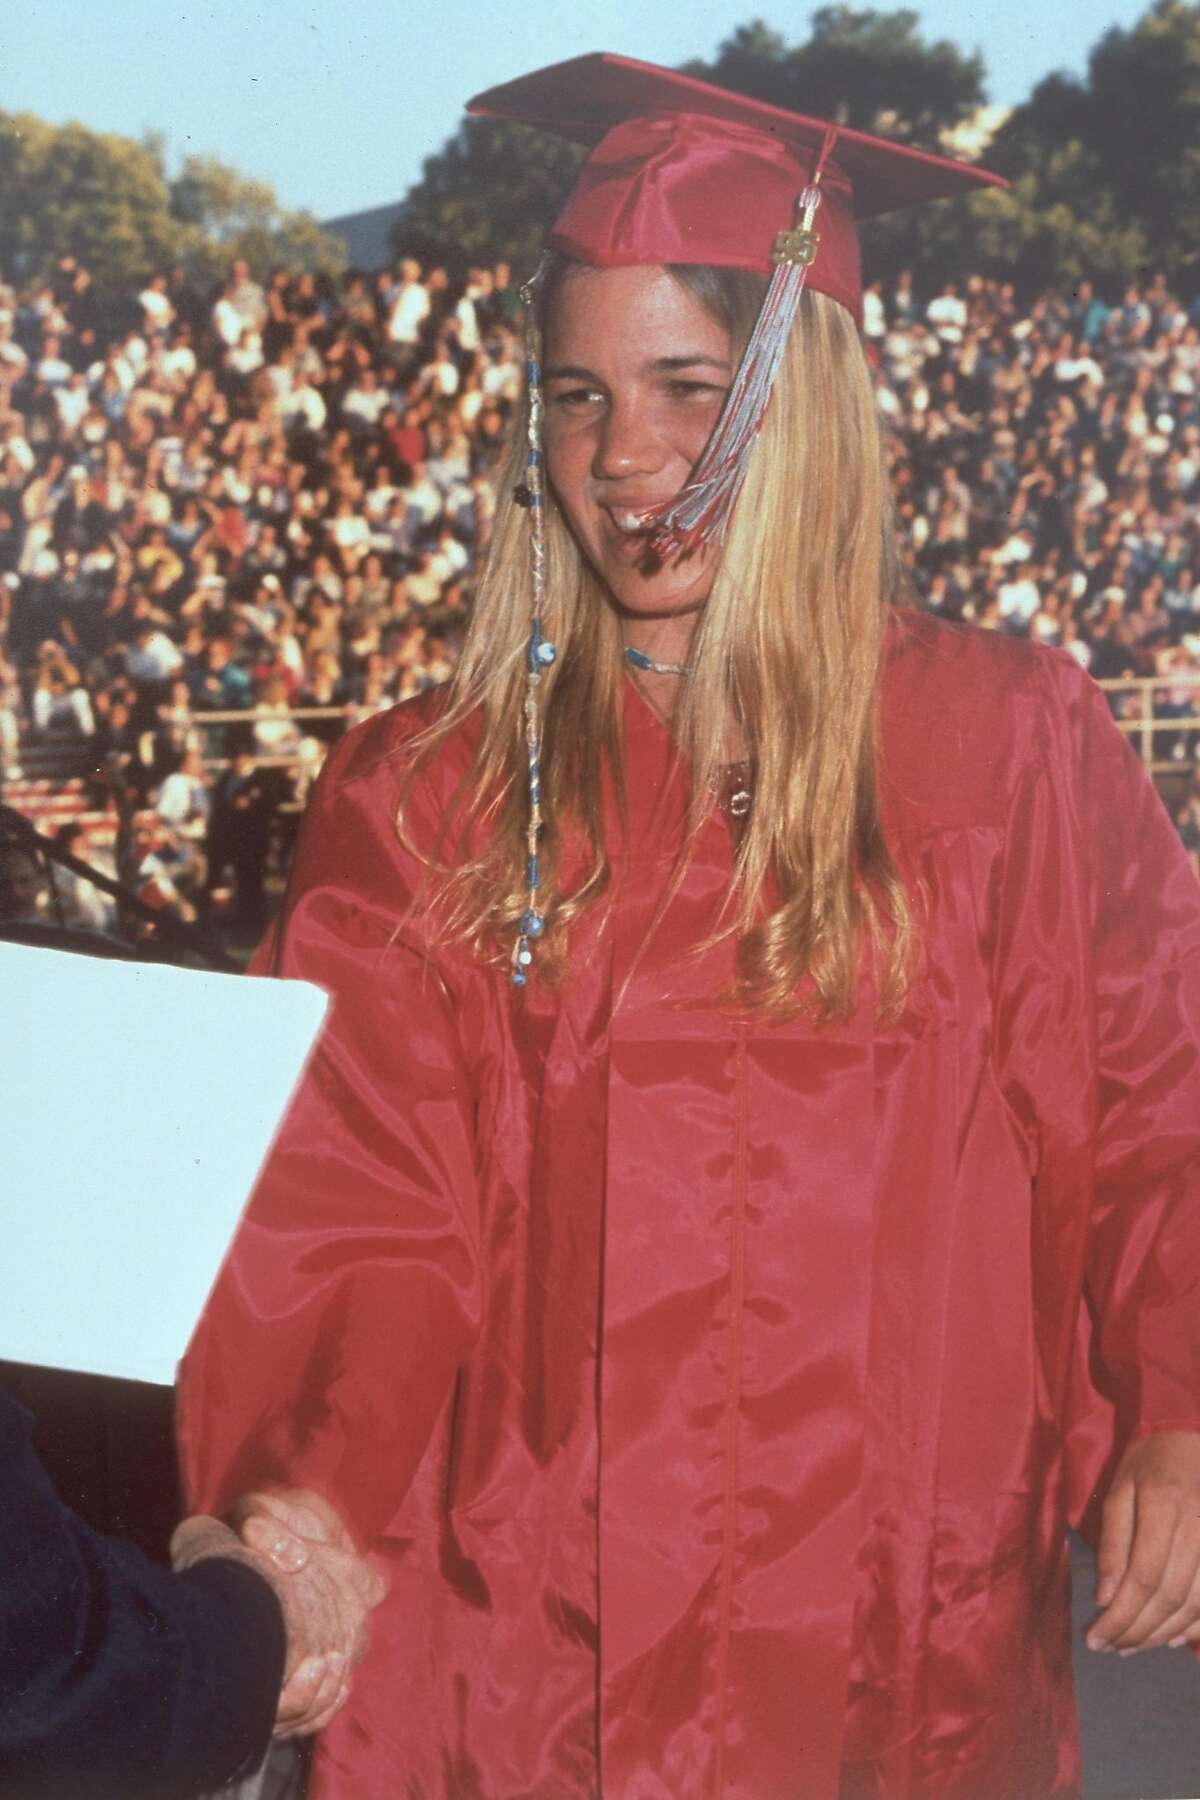 Kristin Smart went missing on May 25, 1996 while attending California Polytechnic State University, San Luis Obispo and has not been heard from since. (Photo by Axel Koester/Sygma via Getty Images)